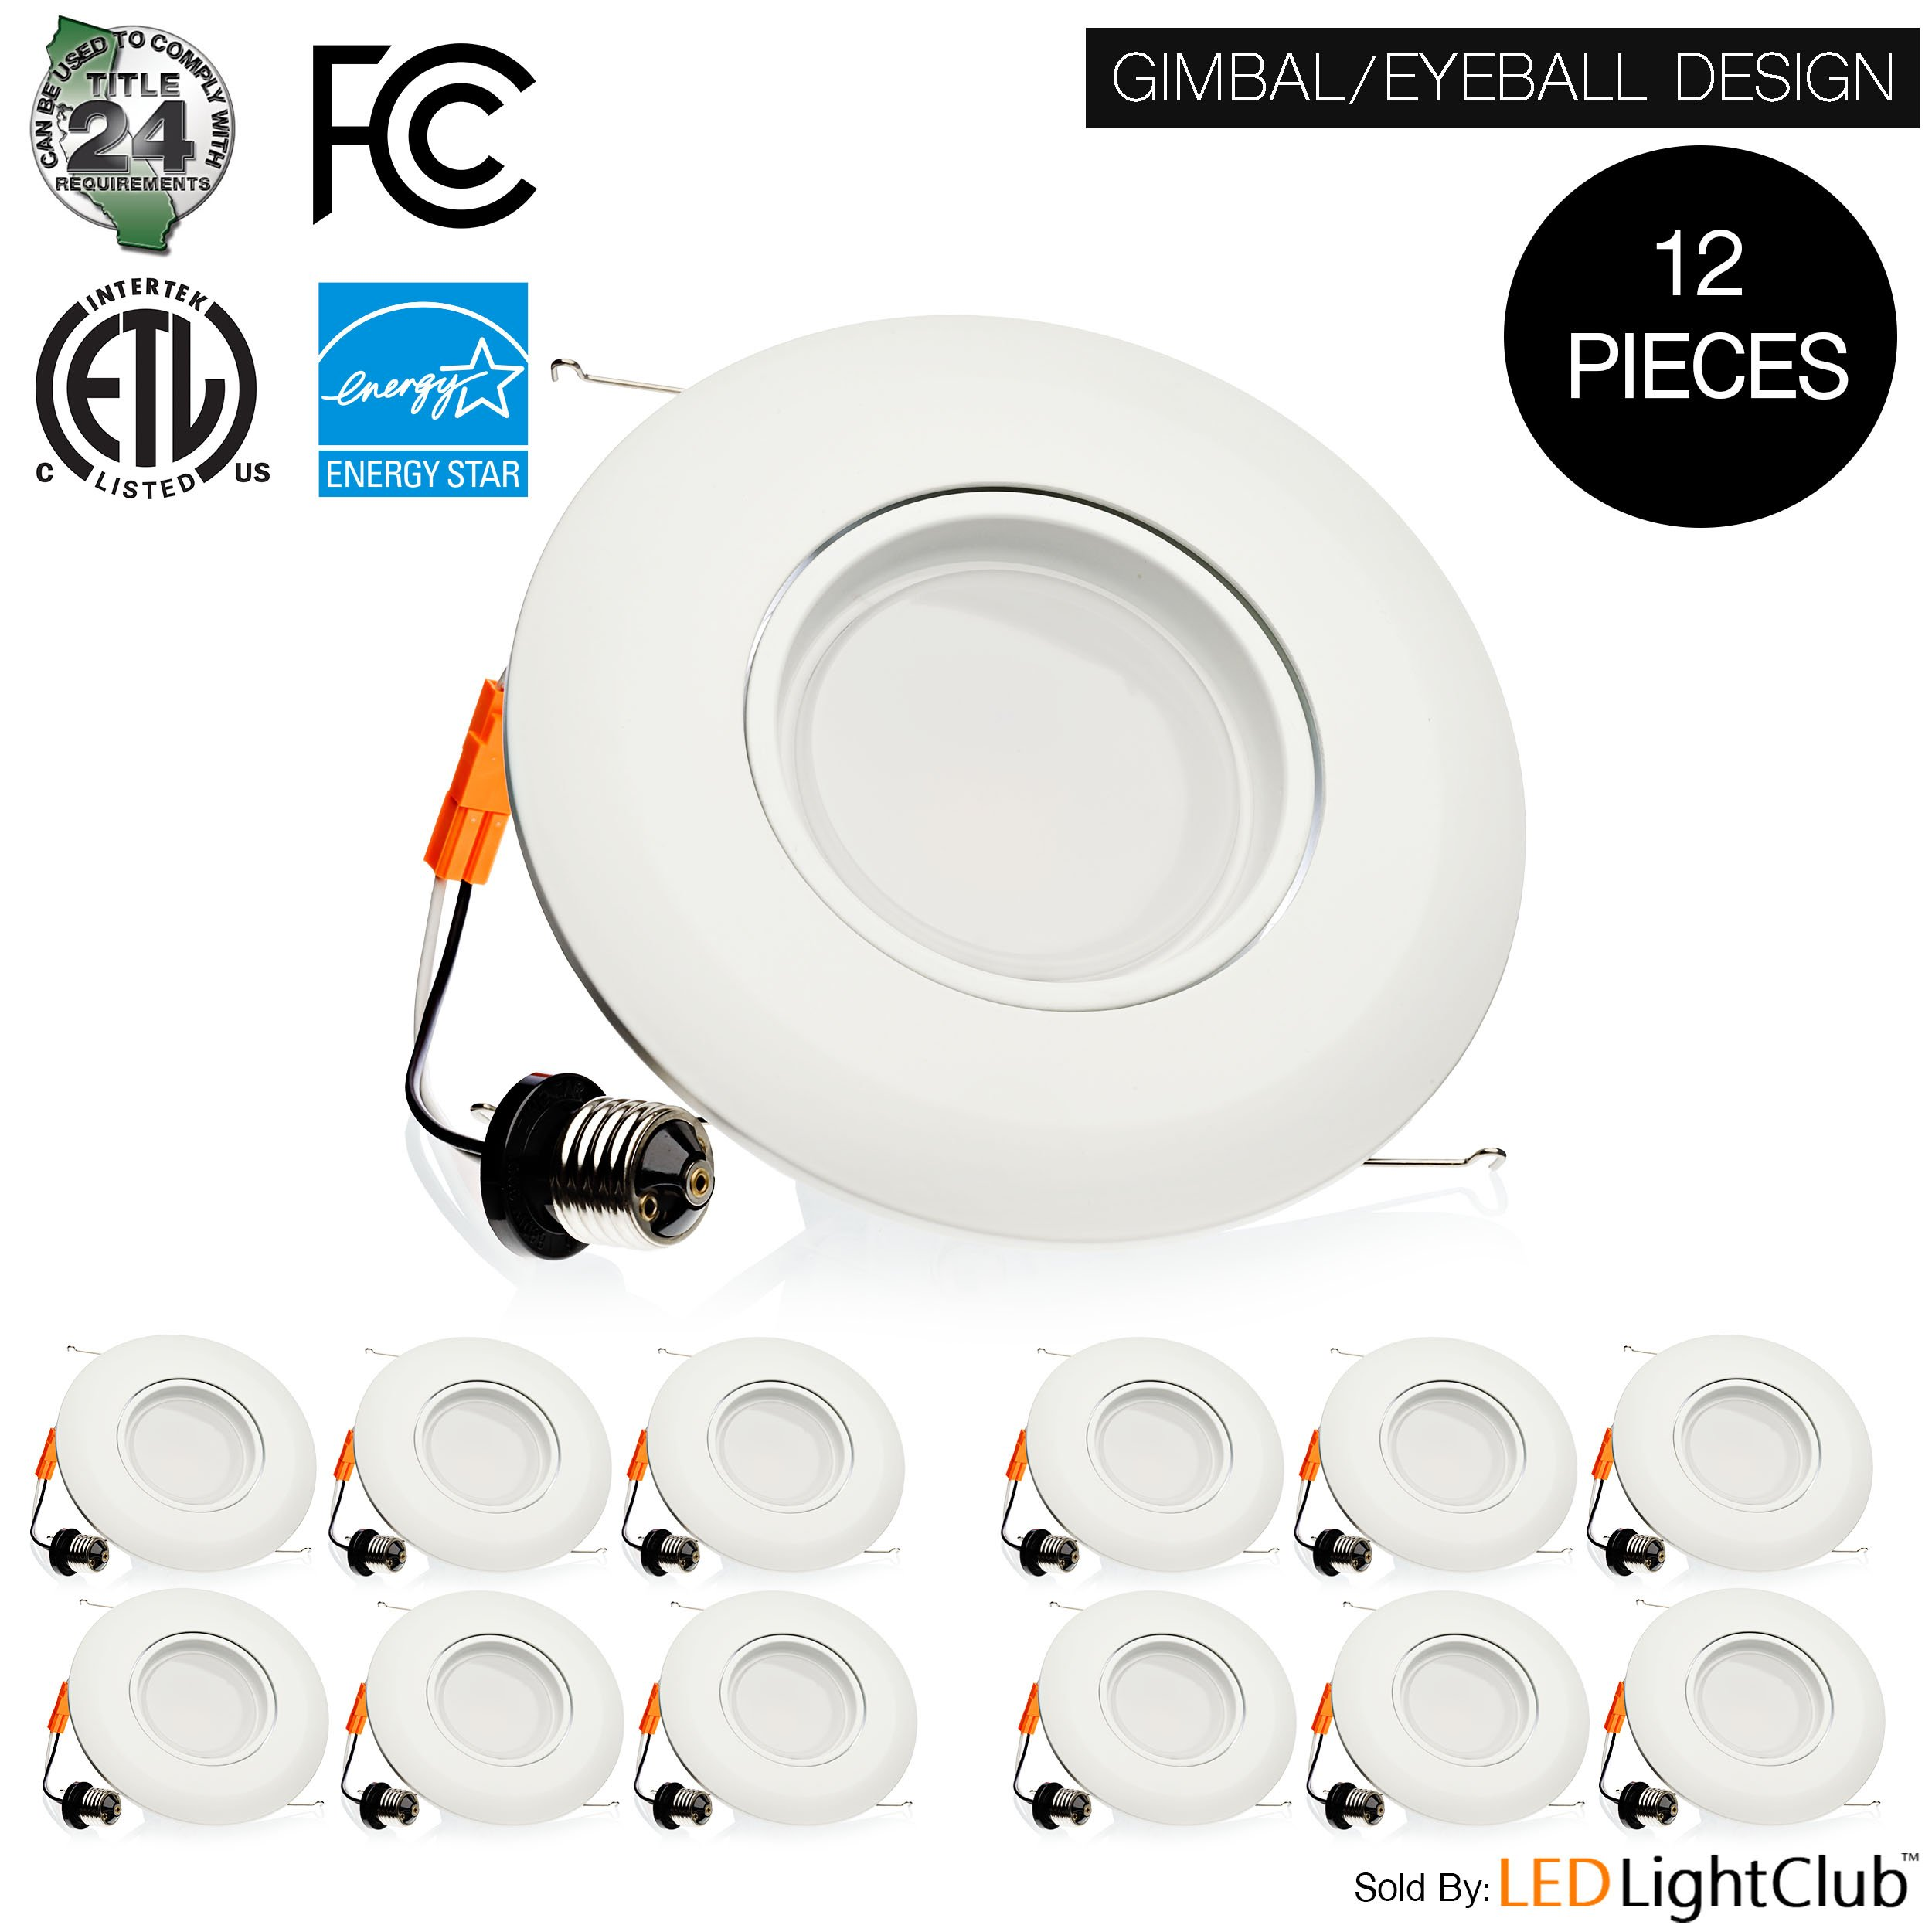 (12-Pack) 6-inch LED Adjustable Gimbal Downlight, Dimmable, 15W (120W Replacement), Rotatable Eyeball Retrofit Recessed Trim, 5000K (Day Light), 1060LM, ENERGY STAR & ETL-Listed by Parmida LED Technologies